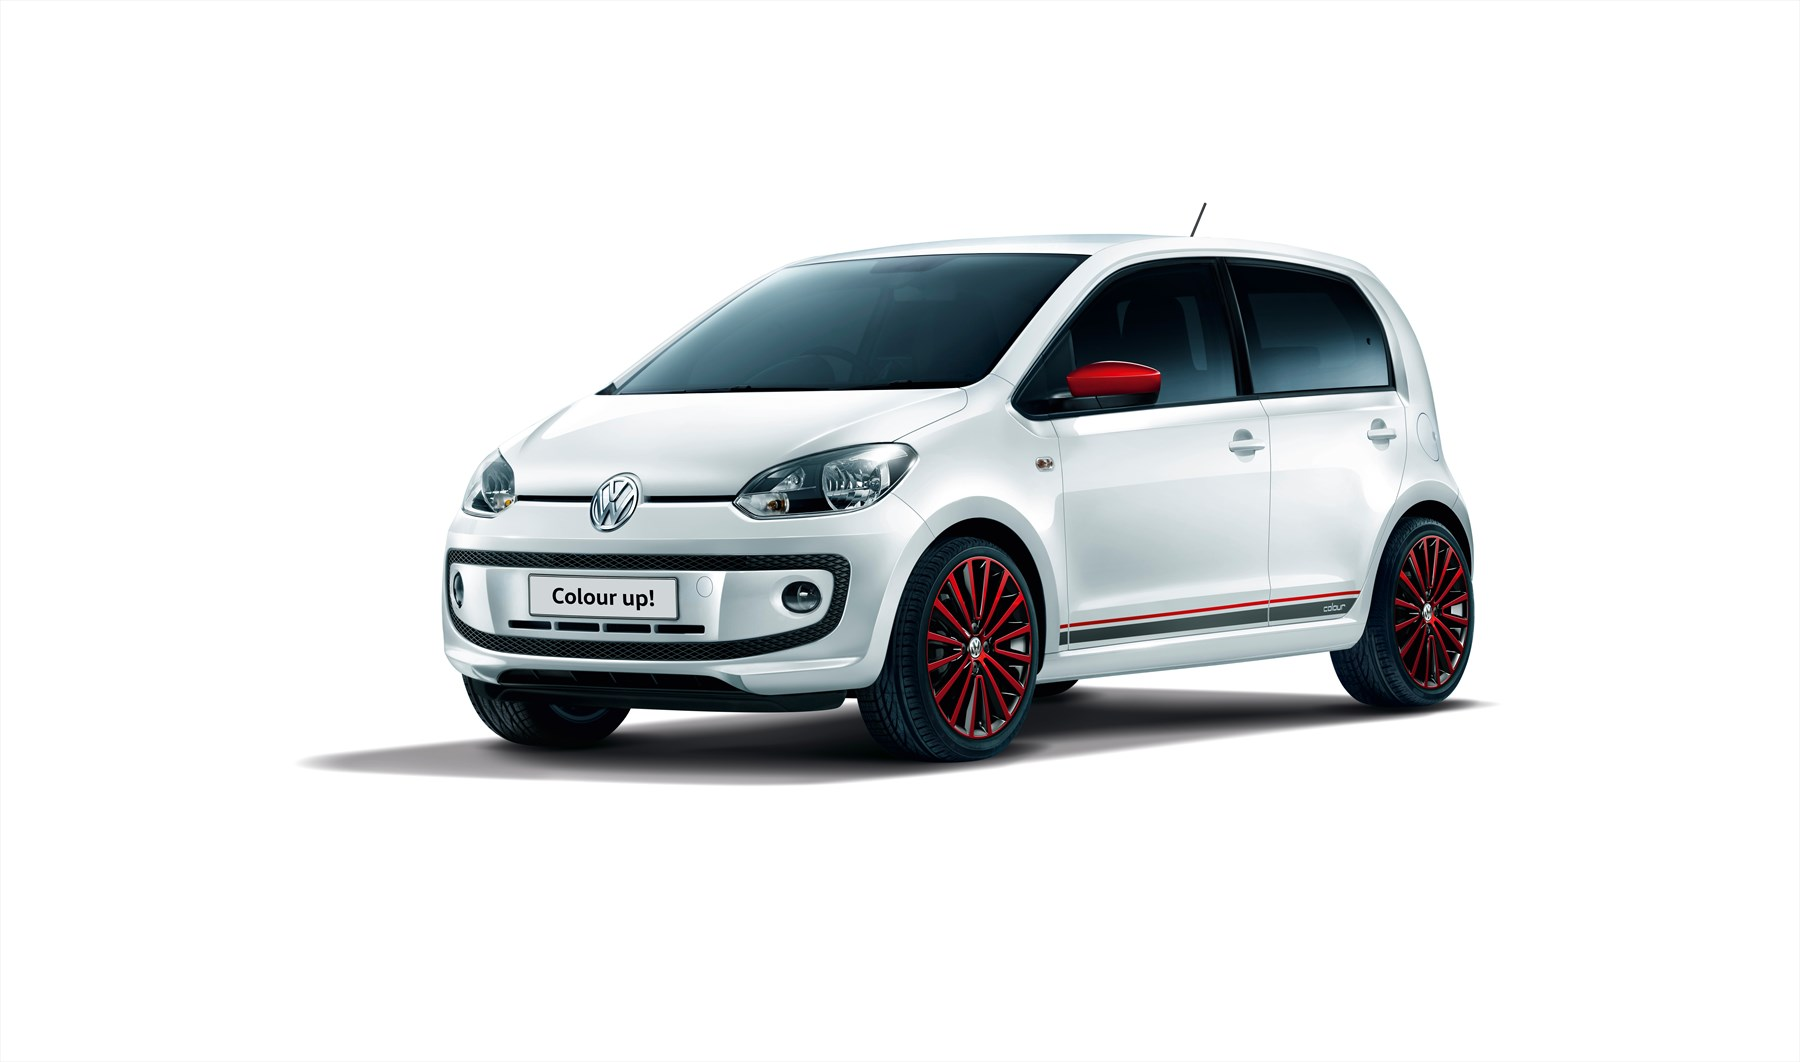 volkswagen up its game with the addition of extra doors and new derivatives barloworld motor. Black Bedroom Furniture Sets. Home Design Ideas